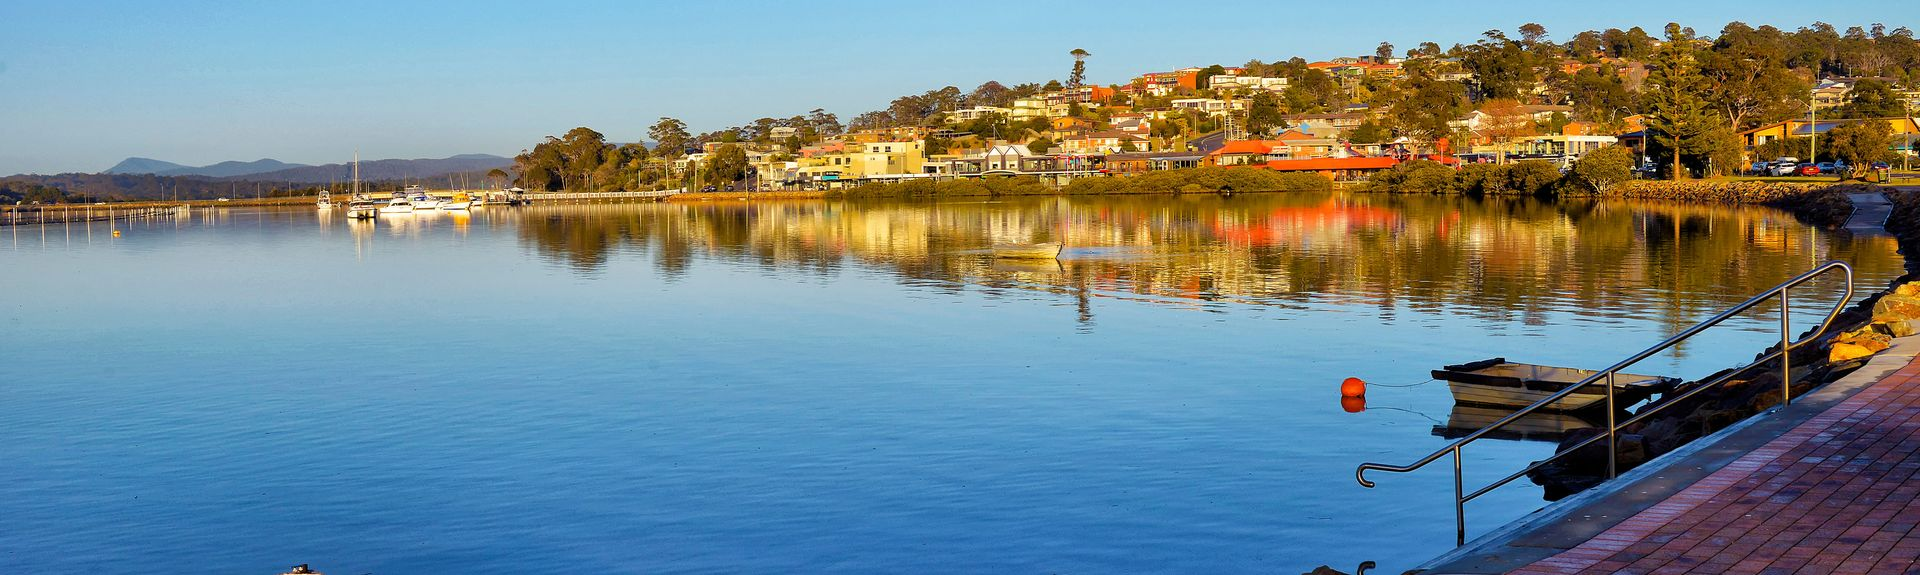 Merimbula, New South Wales, Australia